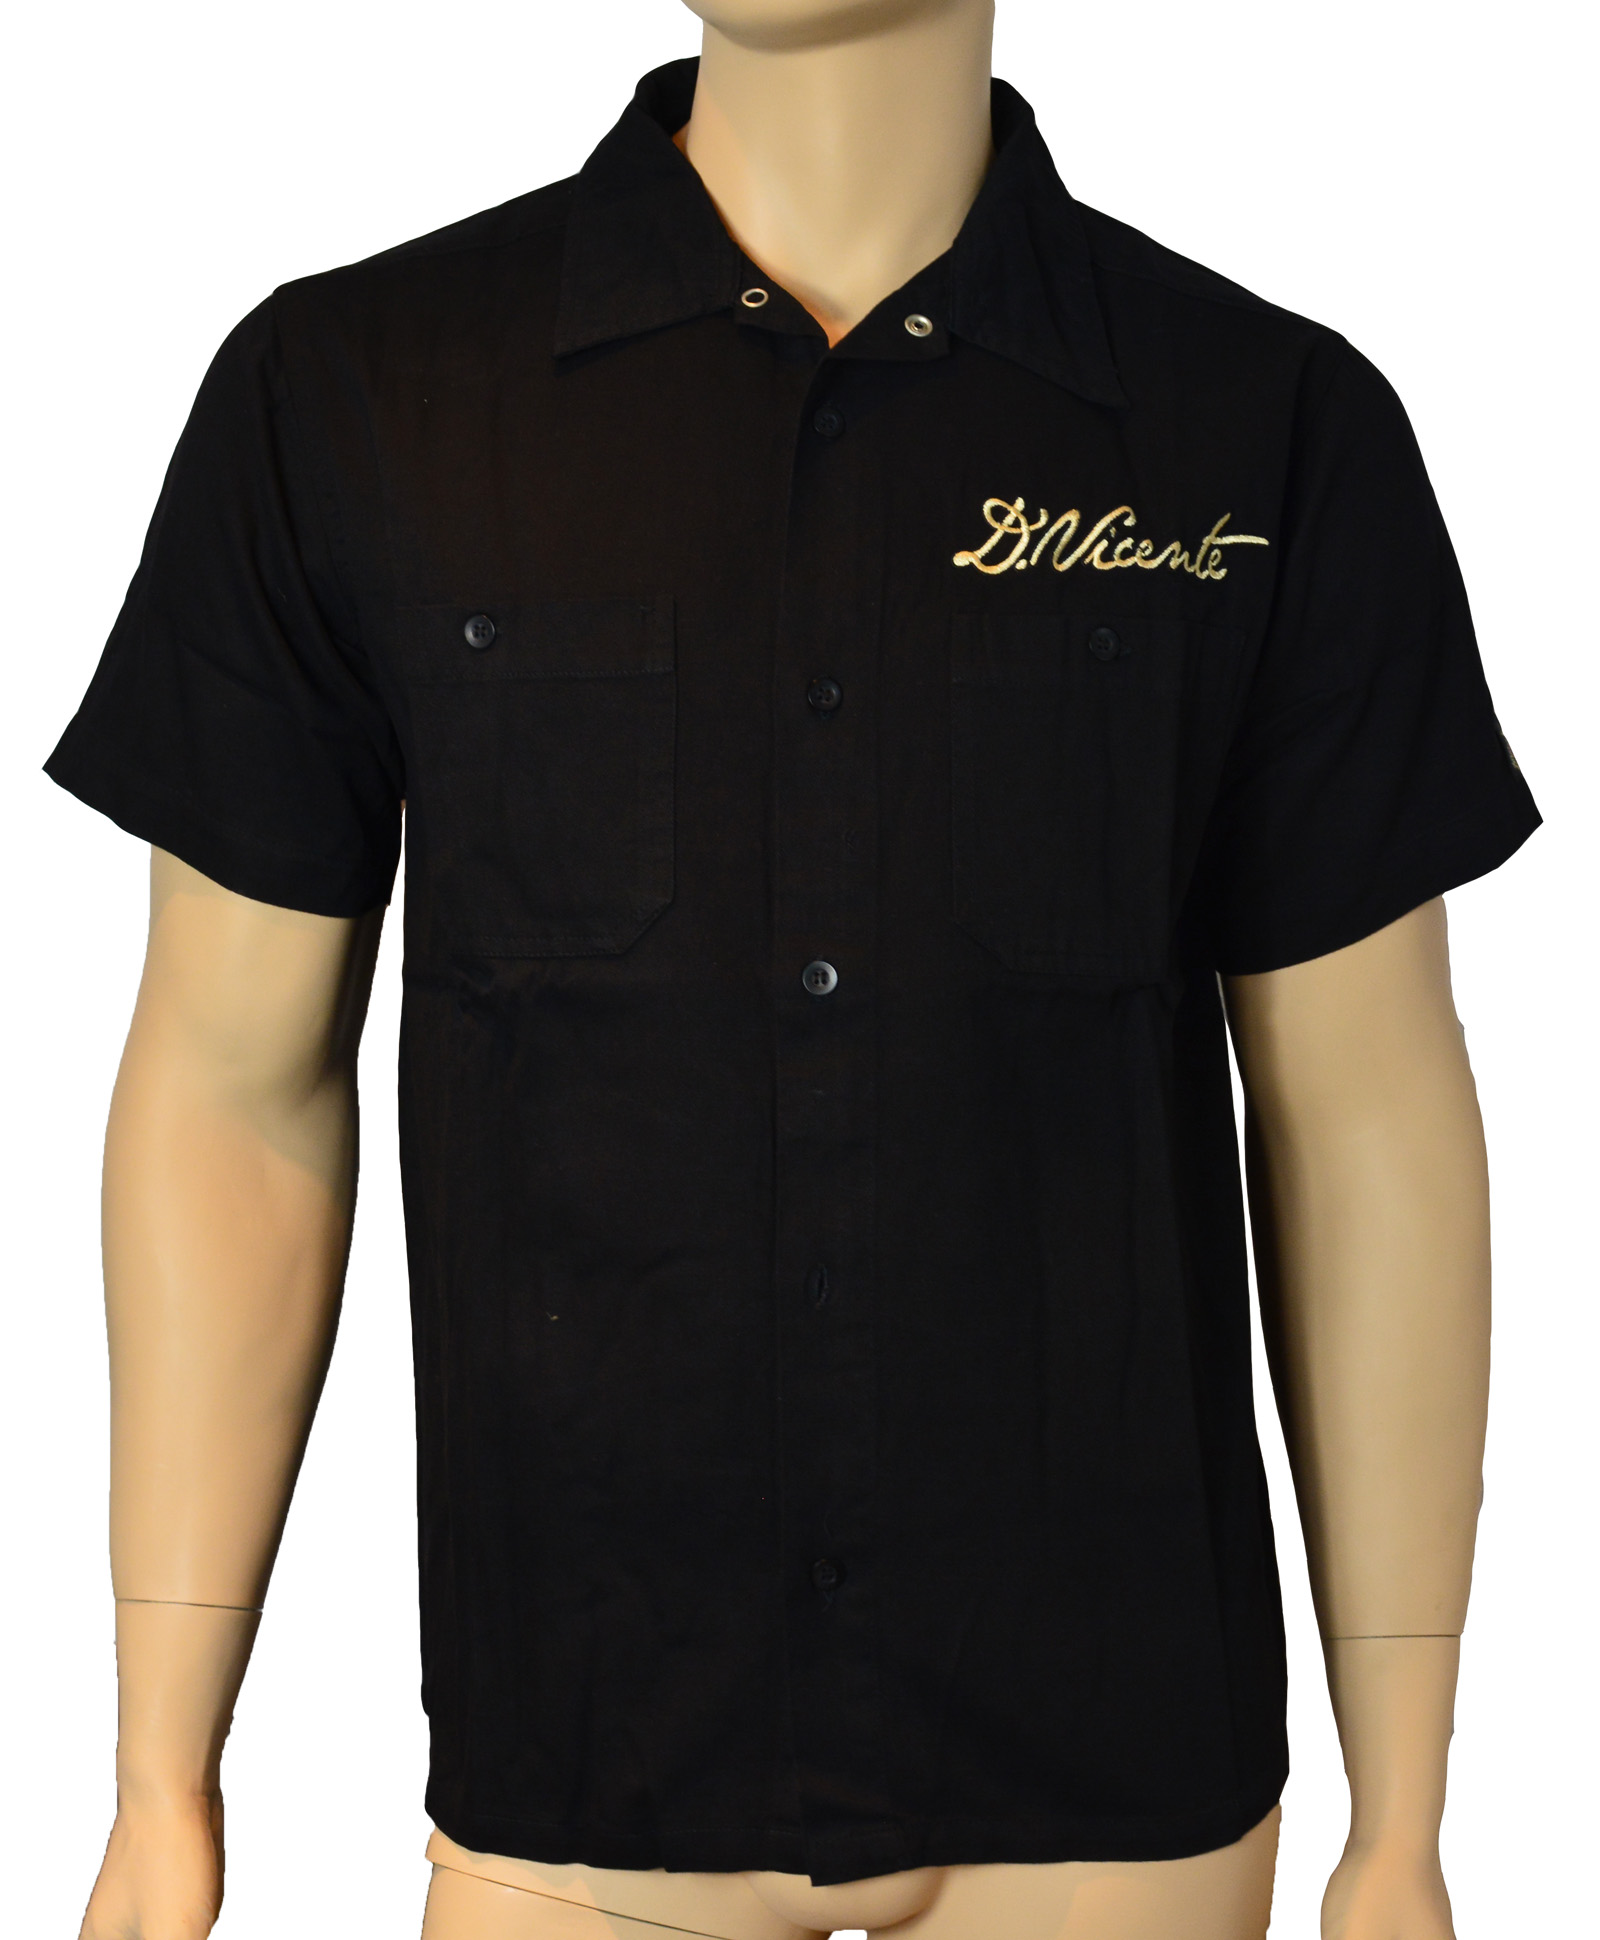 Home Ward Work Shirt Camicia Camicia Da Lavoro Birds Tatuaggio Rockabilly in David Vicente